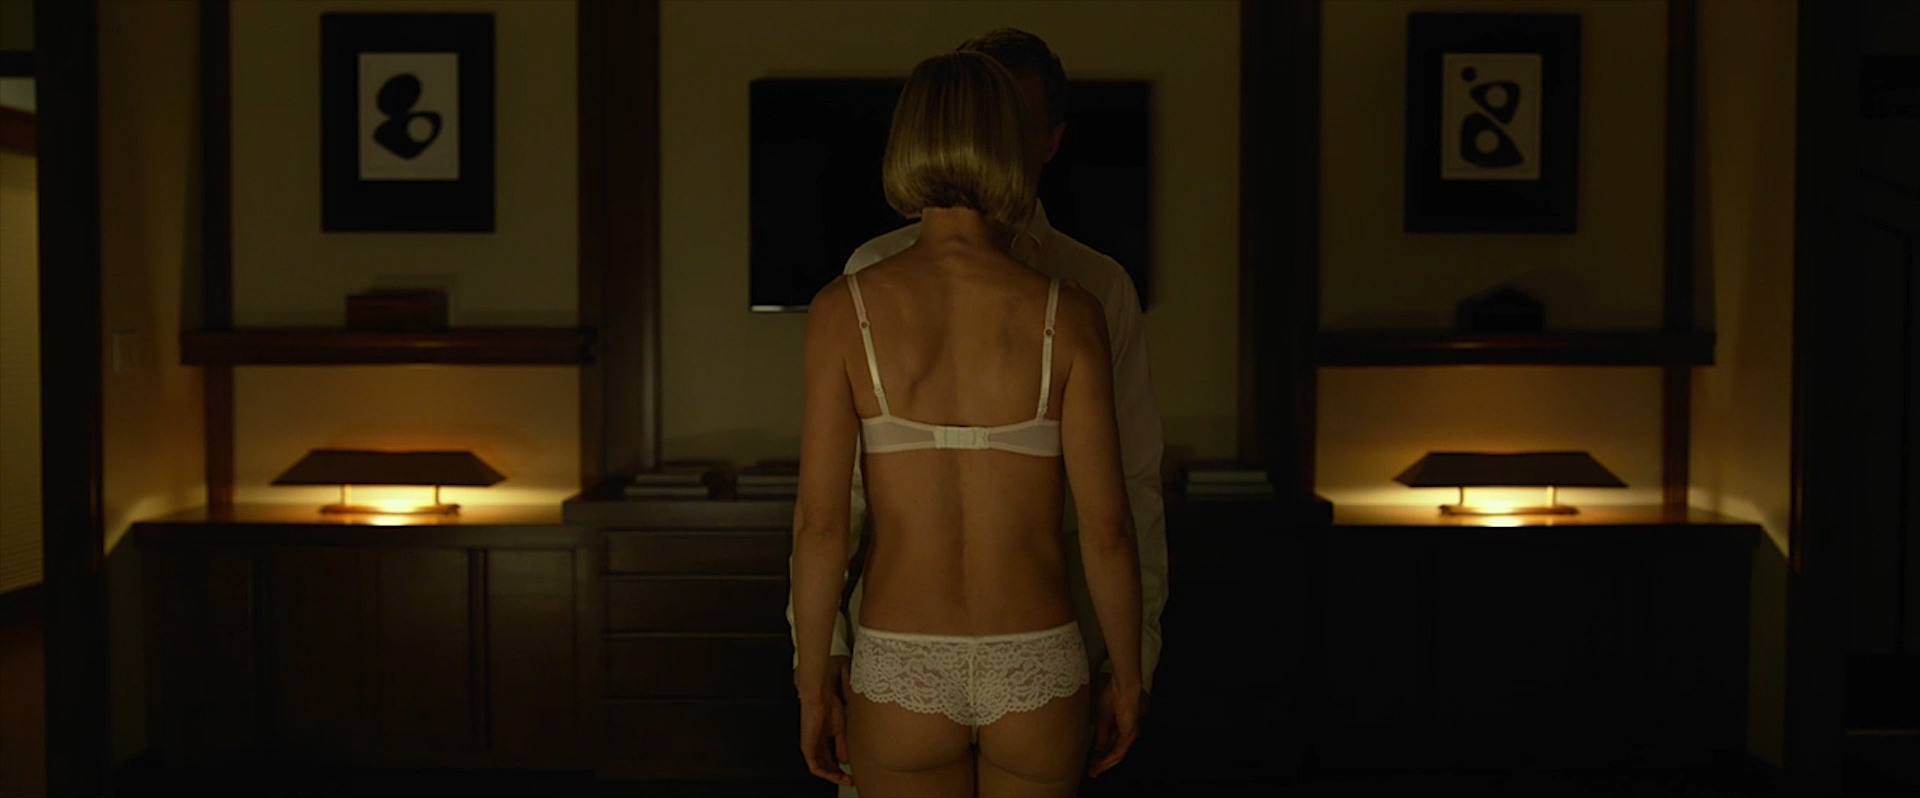 Rosamund Pike nude side boob and sex and Emily Ratajkowski nude topless and sex - Gone Girl (2014) WEB-DL hd1080p (5)